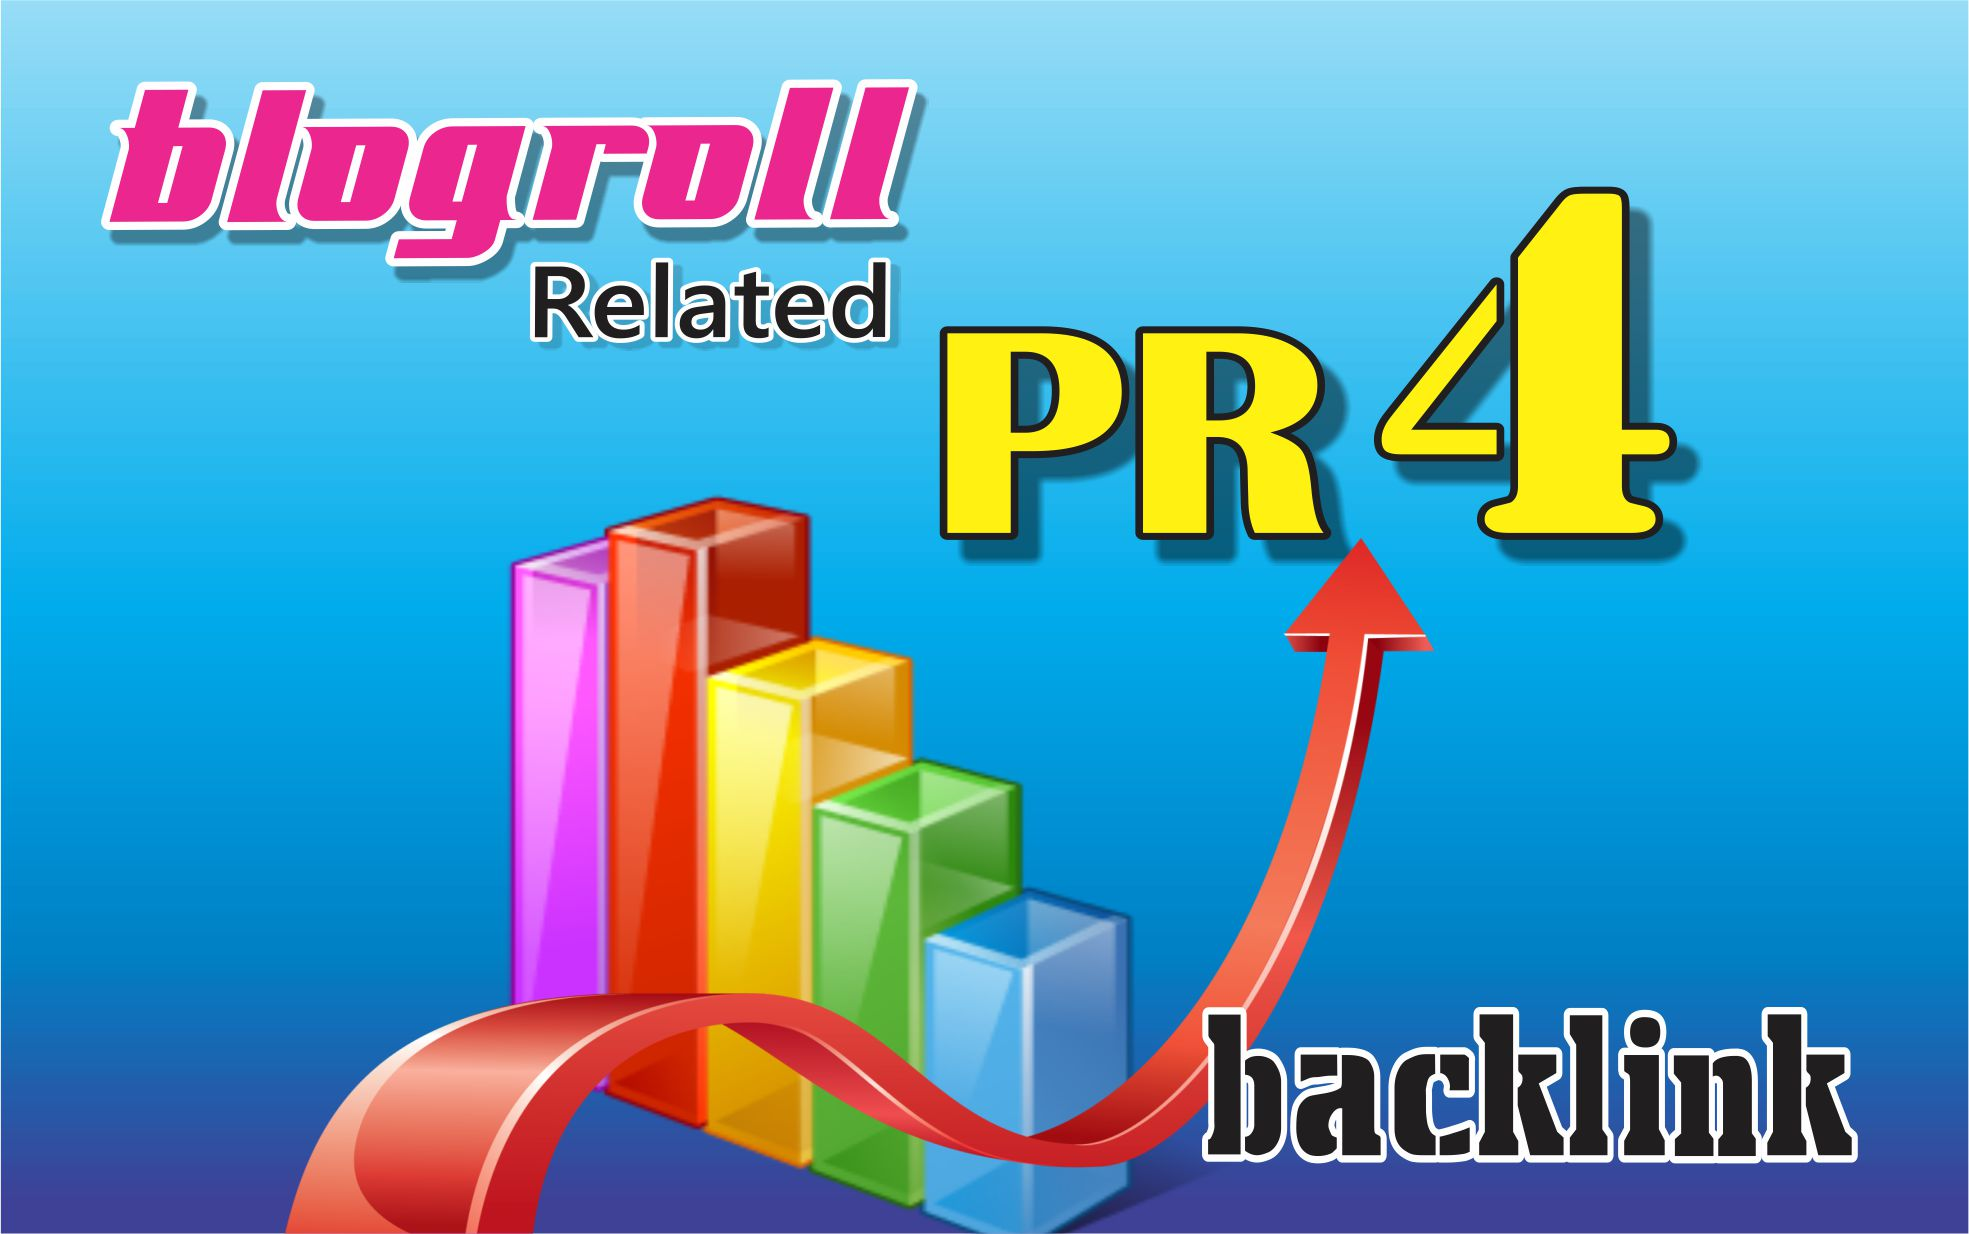 I give you backlink 15 x DA20-DA30 blogroll